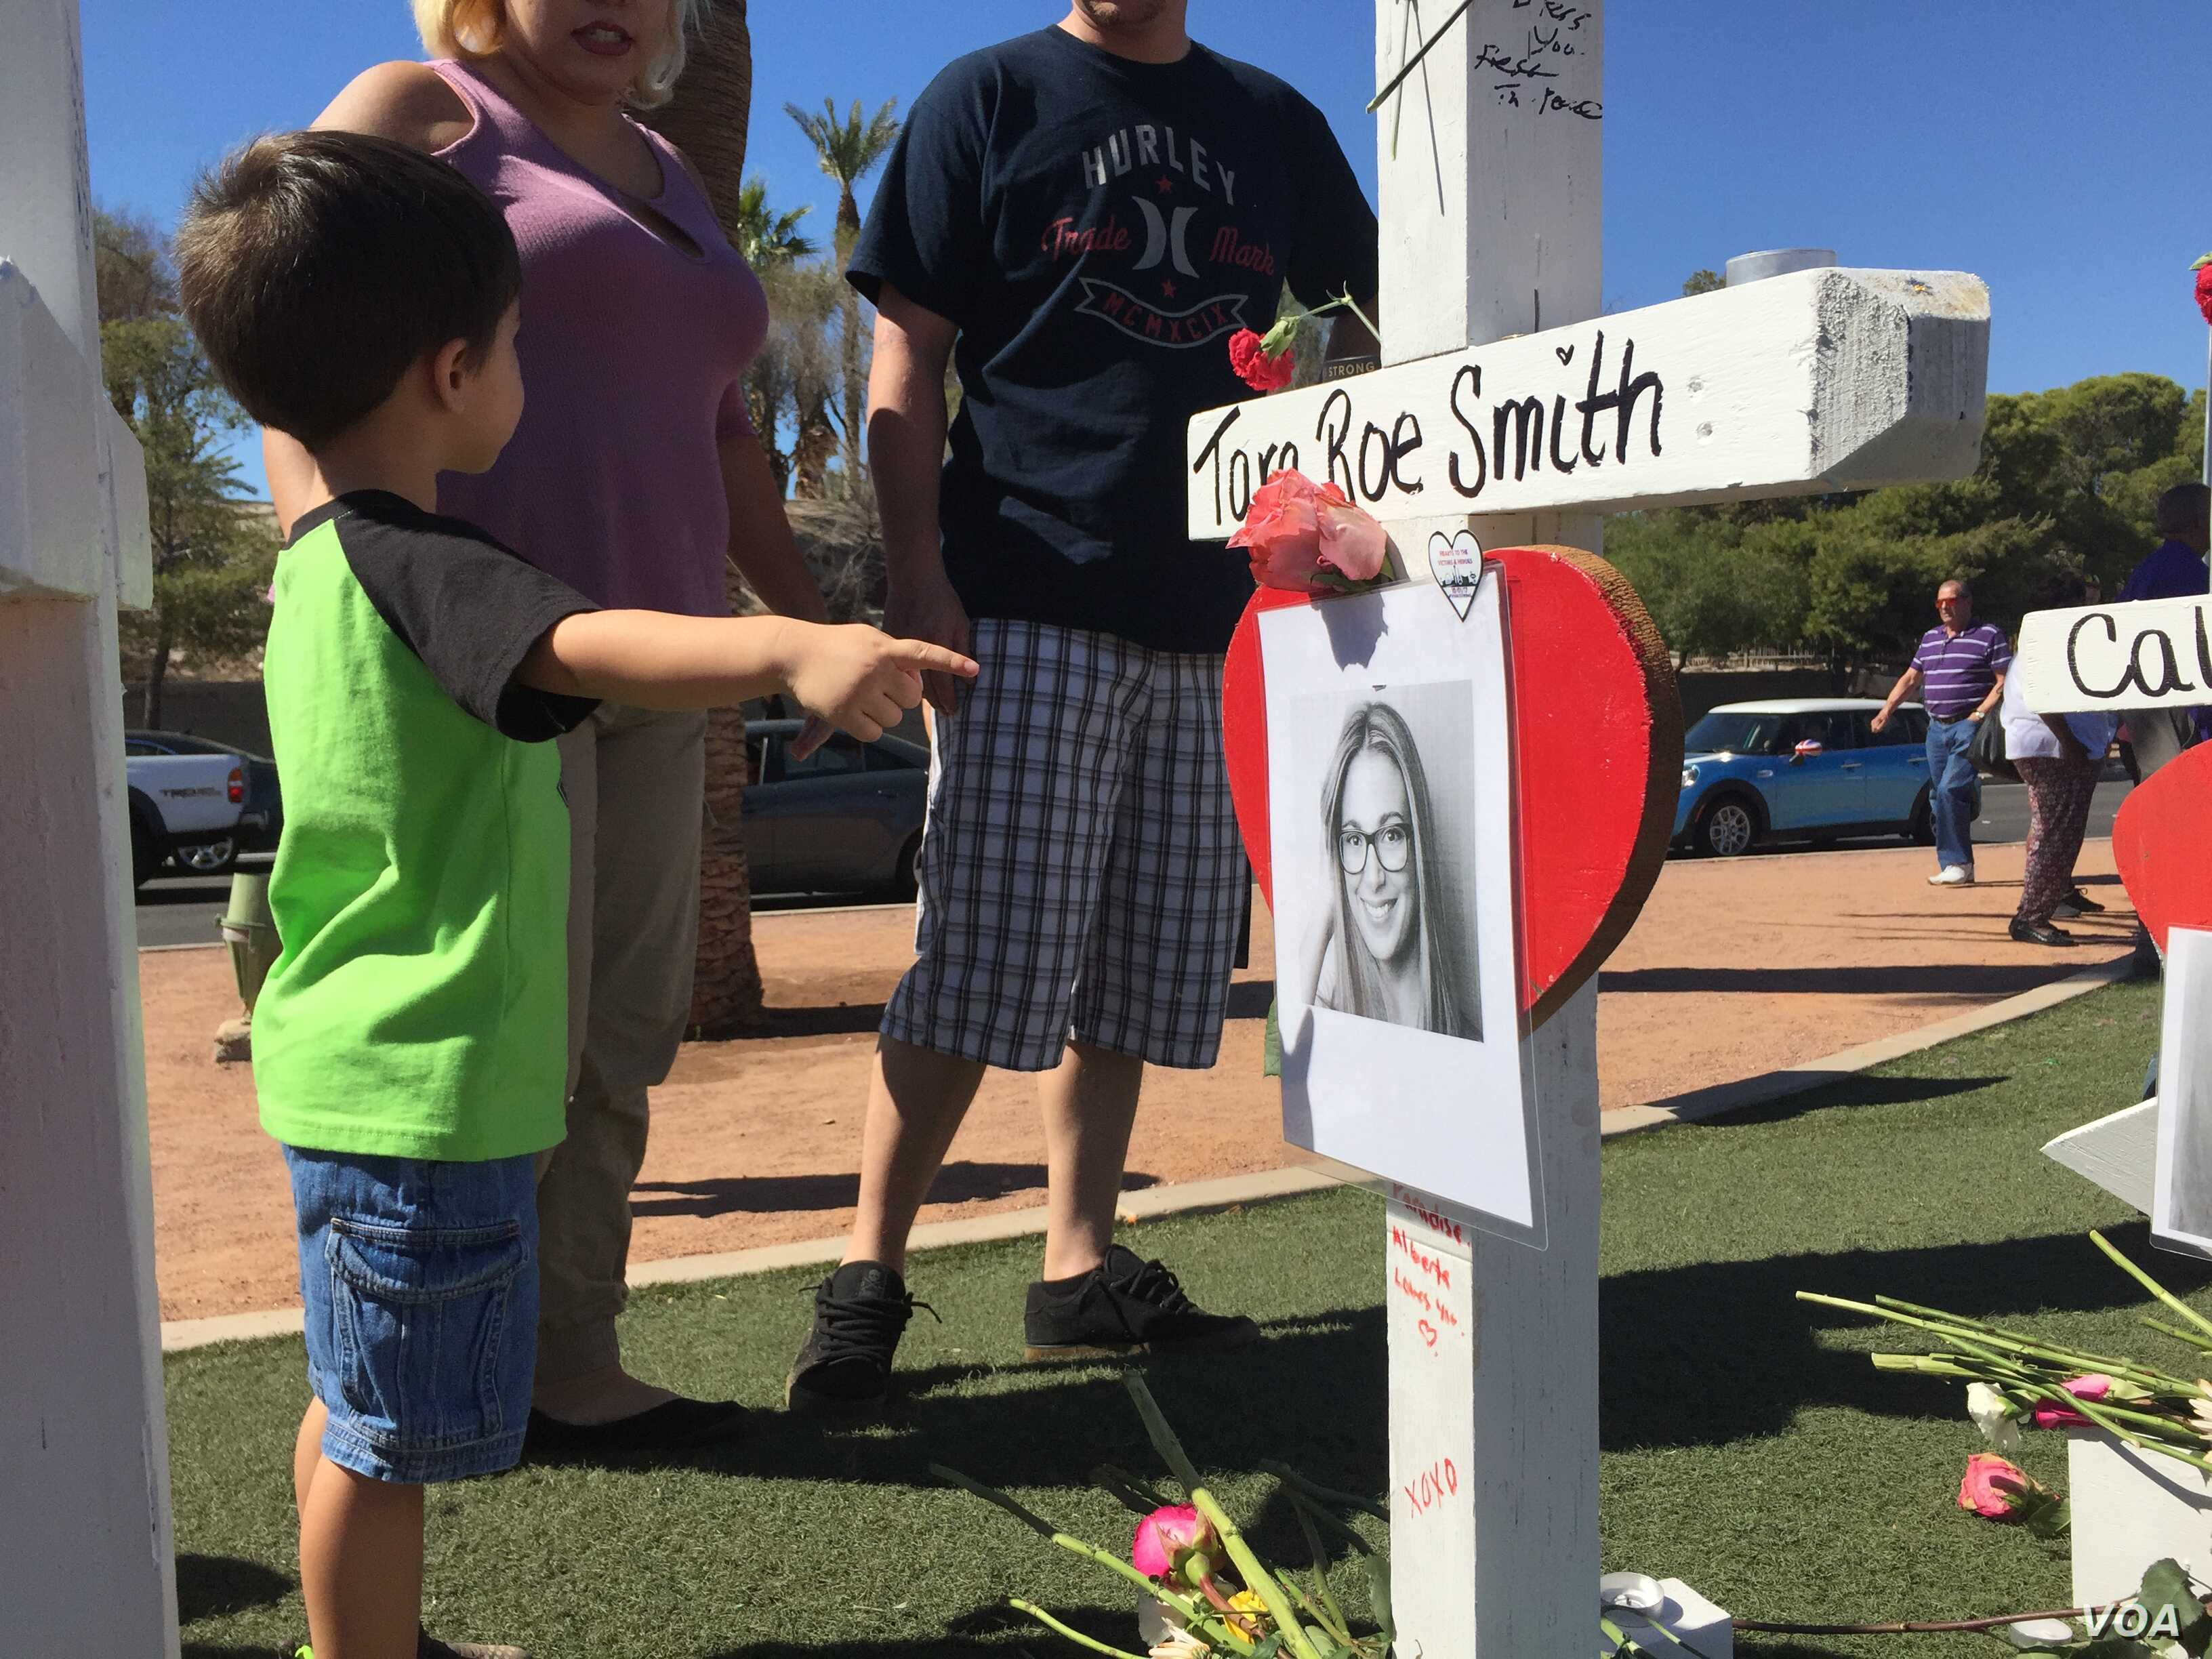 Parents brought their children to the memorial to see the crosses and honor the victims. The crosses honor the 59 people who died when a gunman opened fire on a country music concert, Oct. 1, 2017, in Las Vegas.